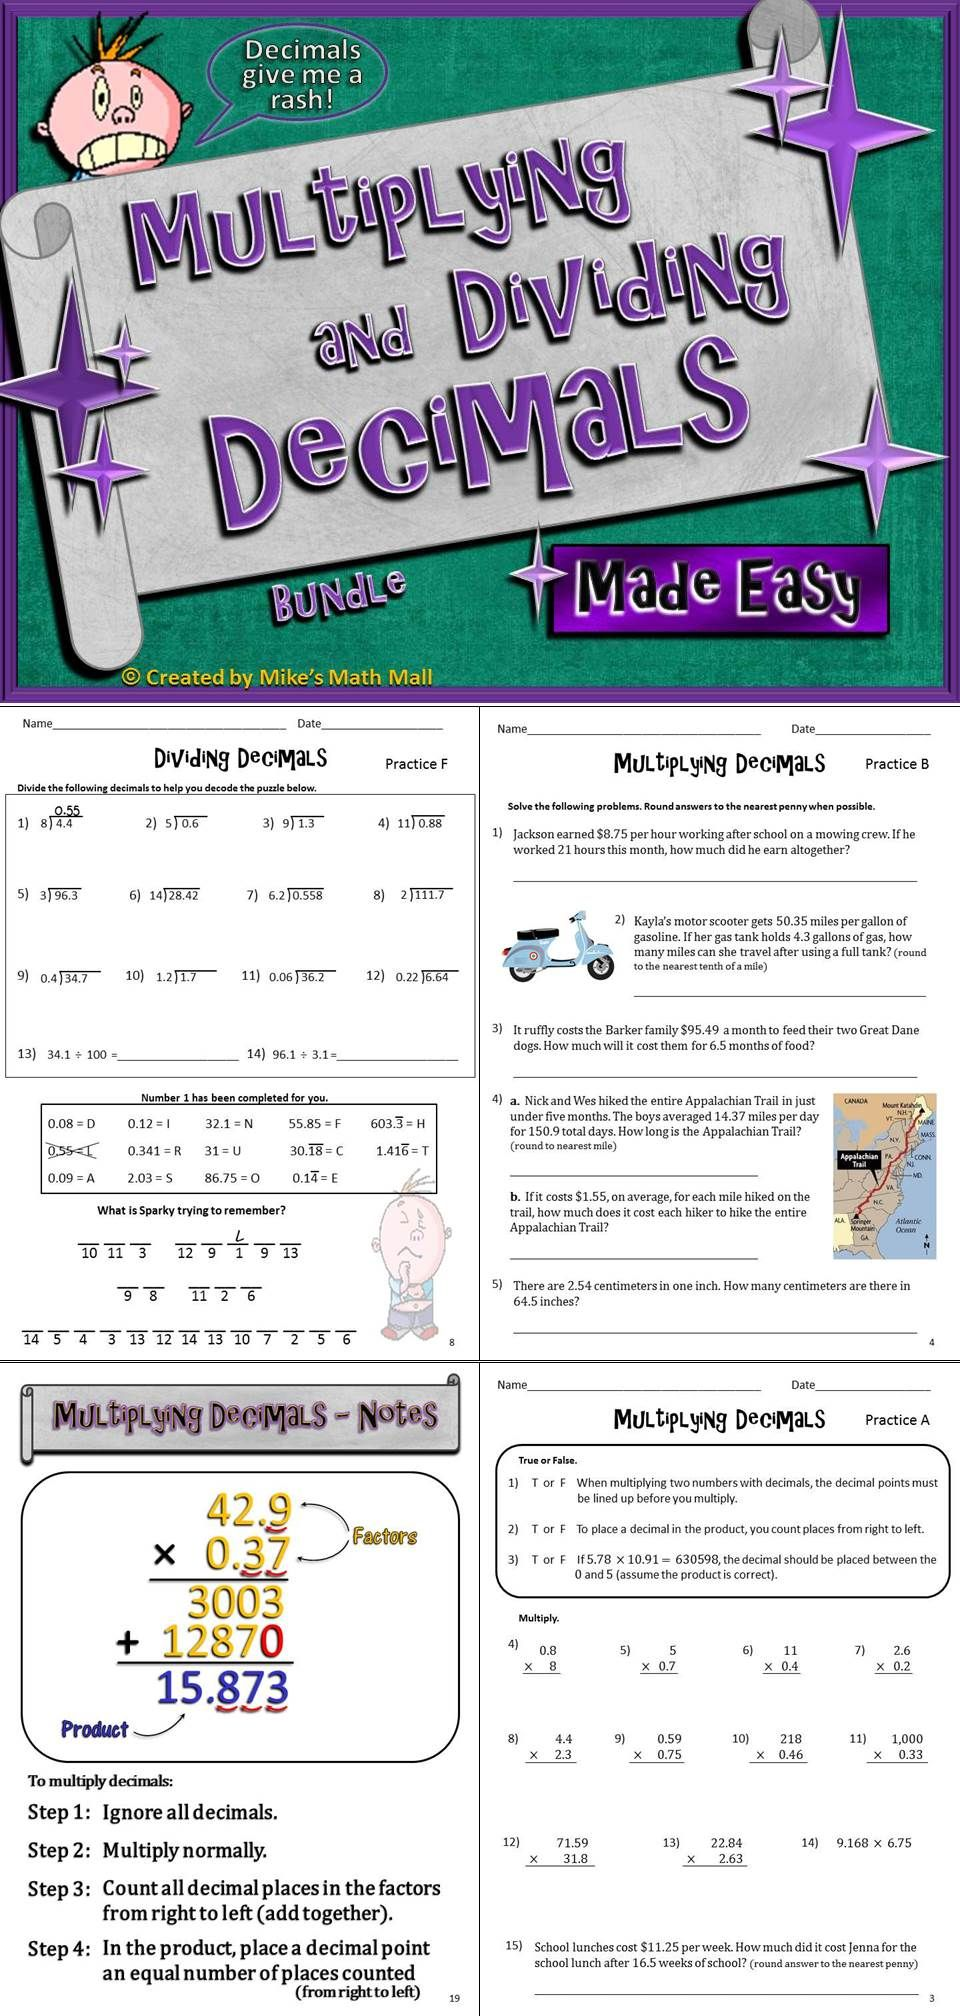 worksheet Dividing Decimals Word Problems Worksheet multiplying and dividing decimals made easy bundled unit your students will enjoy this that explains with lots of